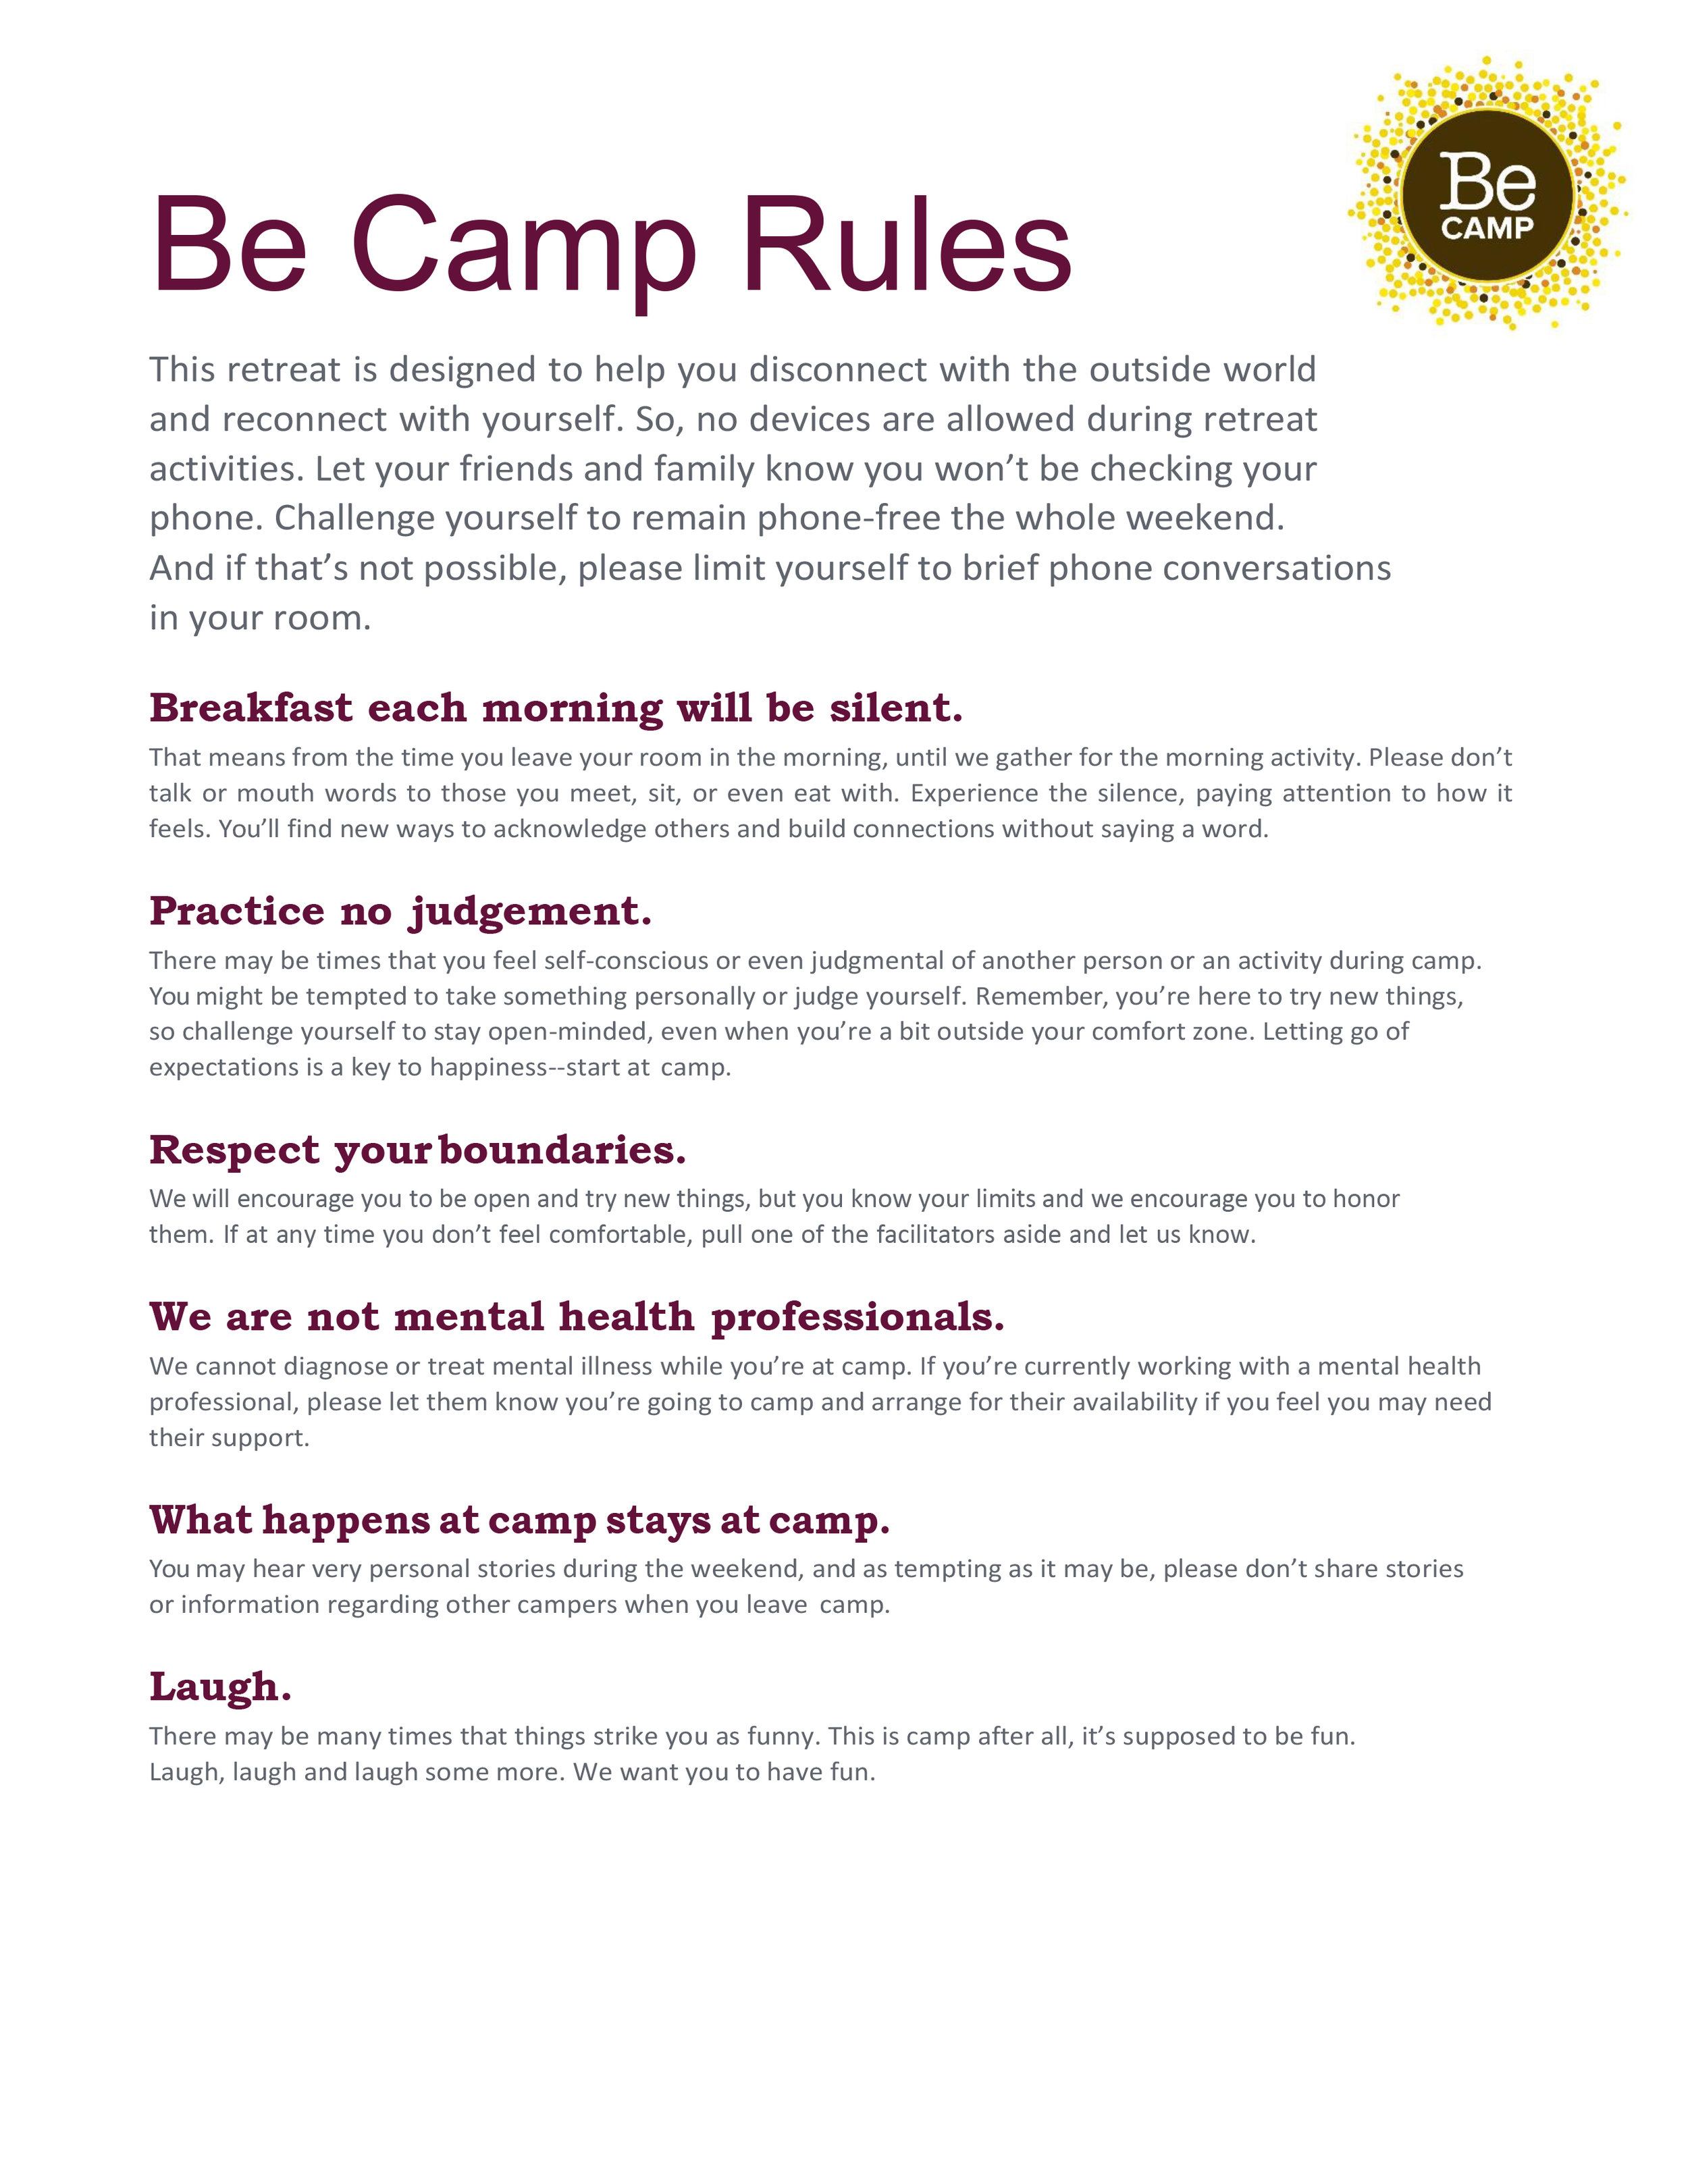 Be-Camp-Rules-Feb-2019.jpg